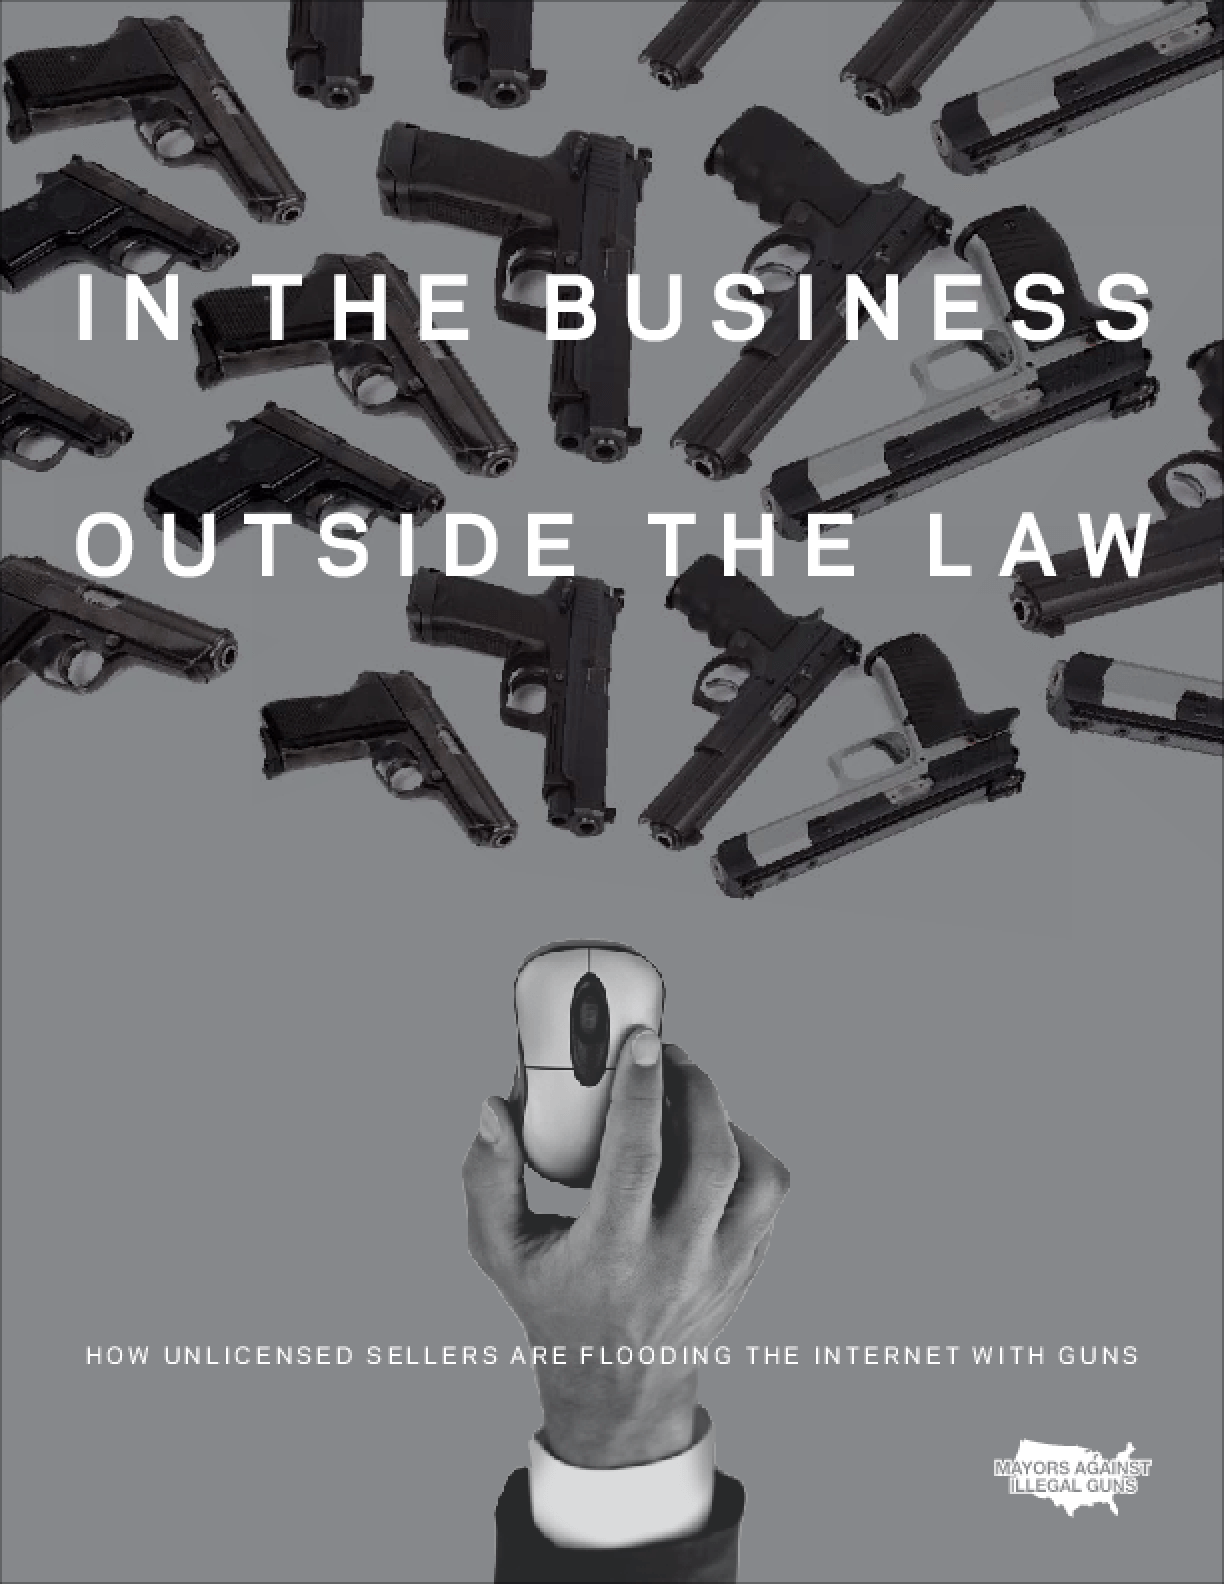 In the Business Outside the Law: How Unlicensed Sellers Are Flooding the Internet with Guns